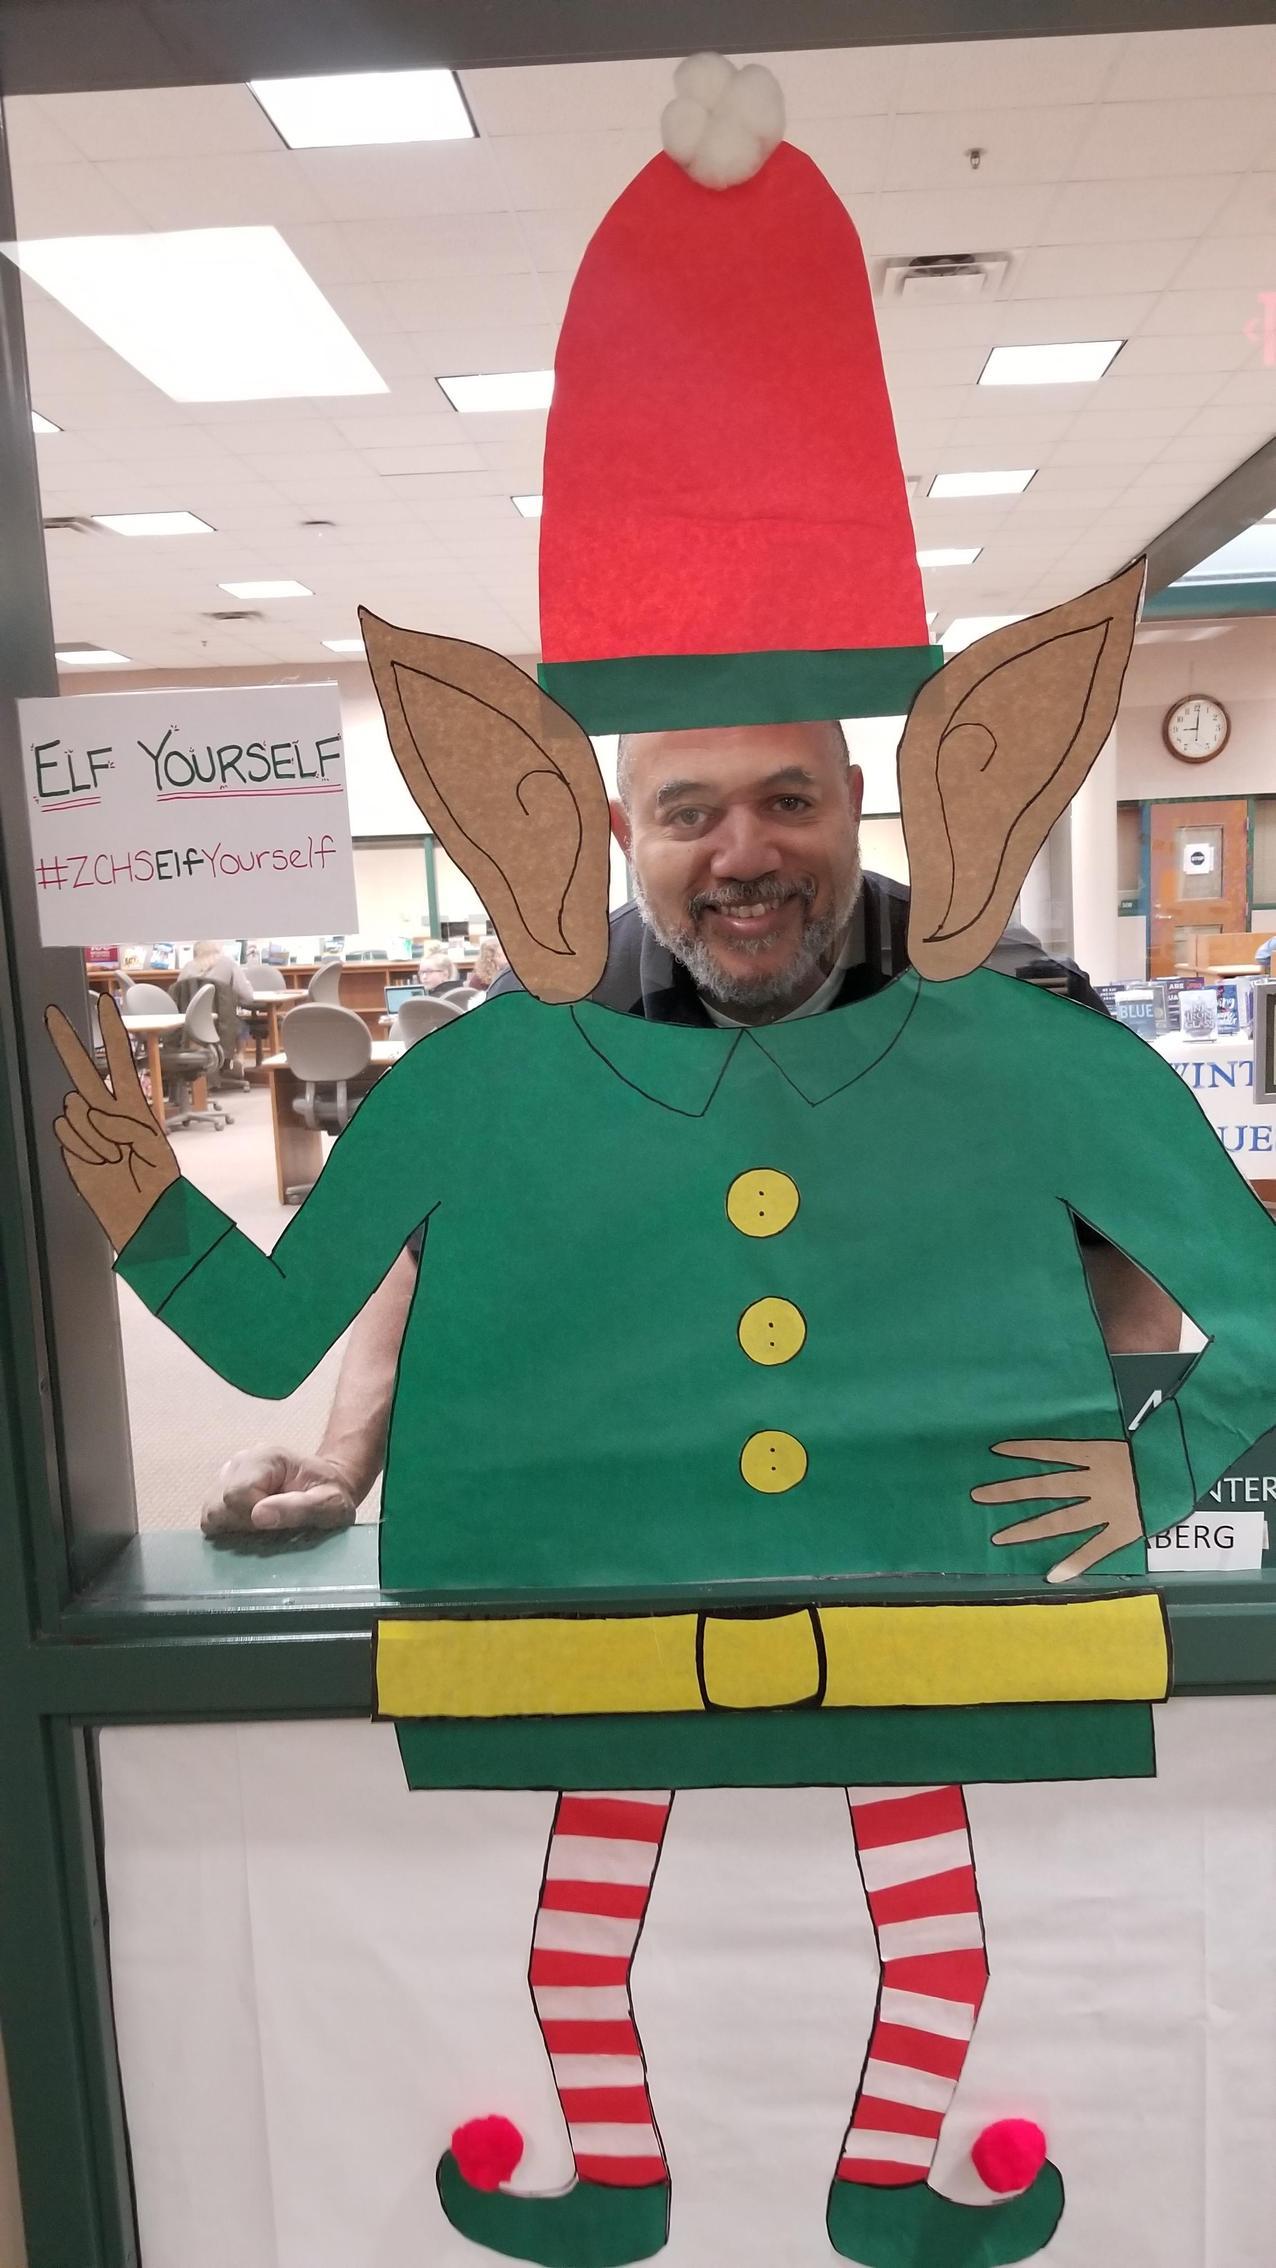 Mr. Nibbs 'Elfed' himself!